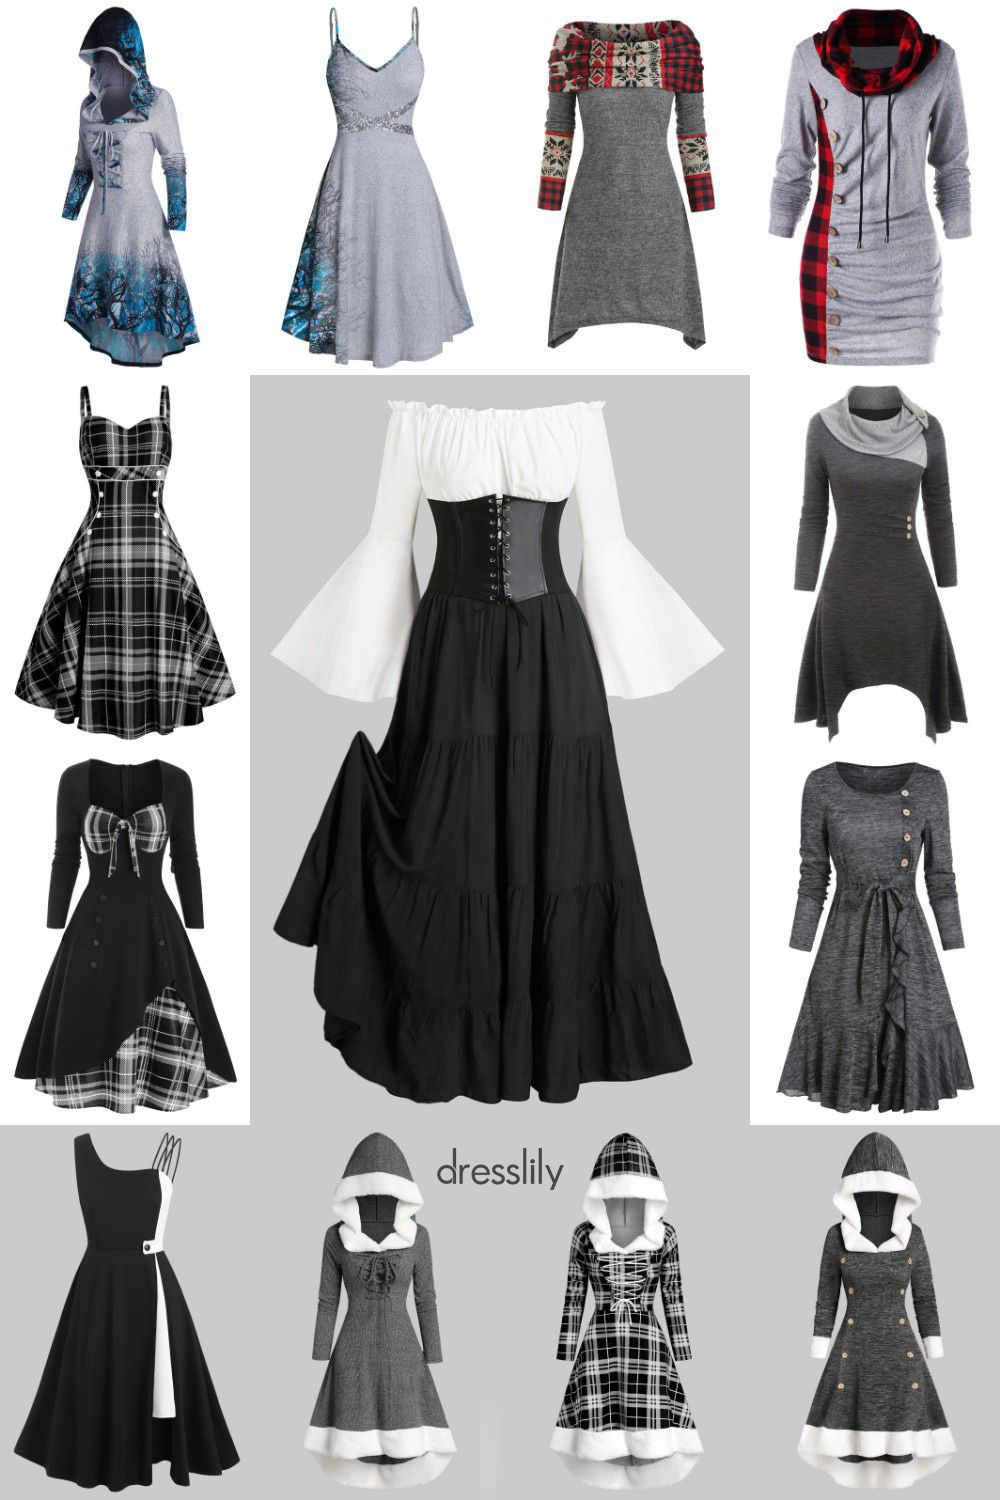 Casual Dresses for Women | Women's Casual Dresses & Day Dresses | Winter Dresses